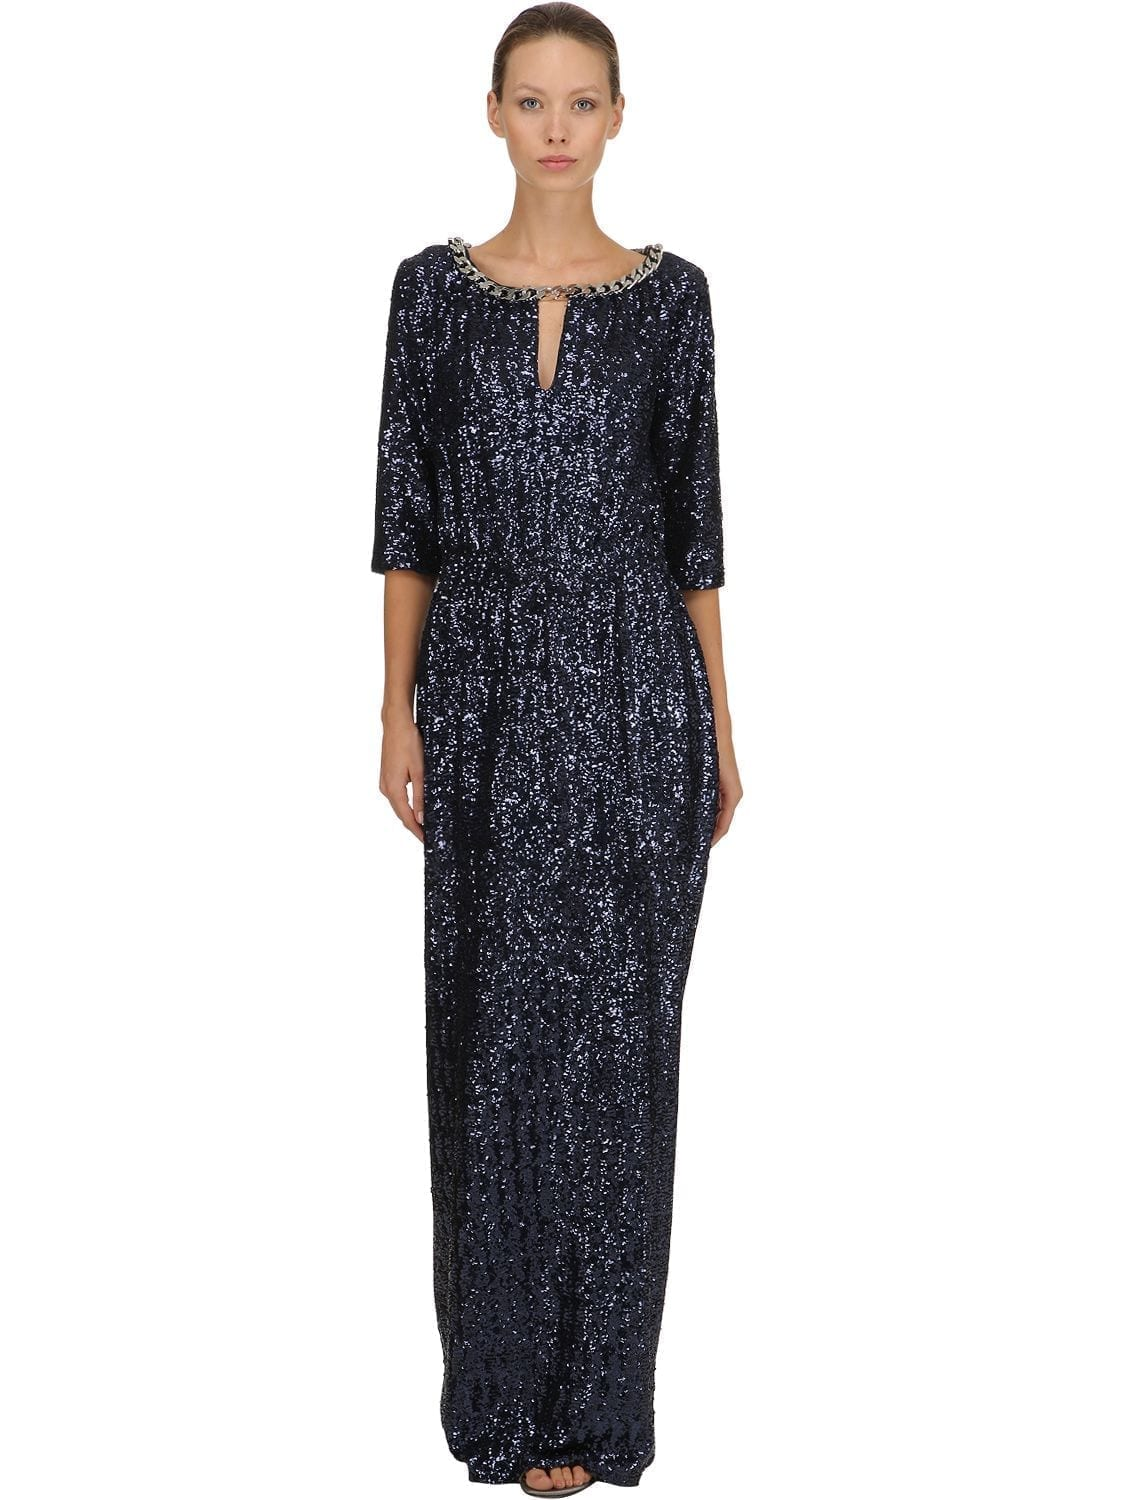 INGIE PARIS Sequined Long Chain Trim Blue Dress